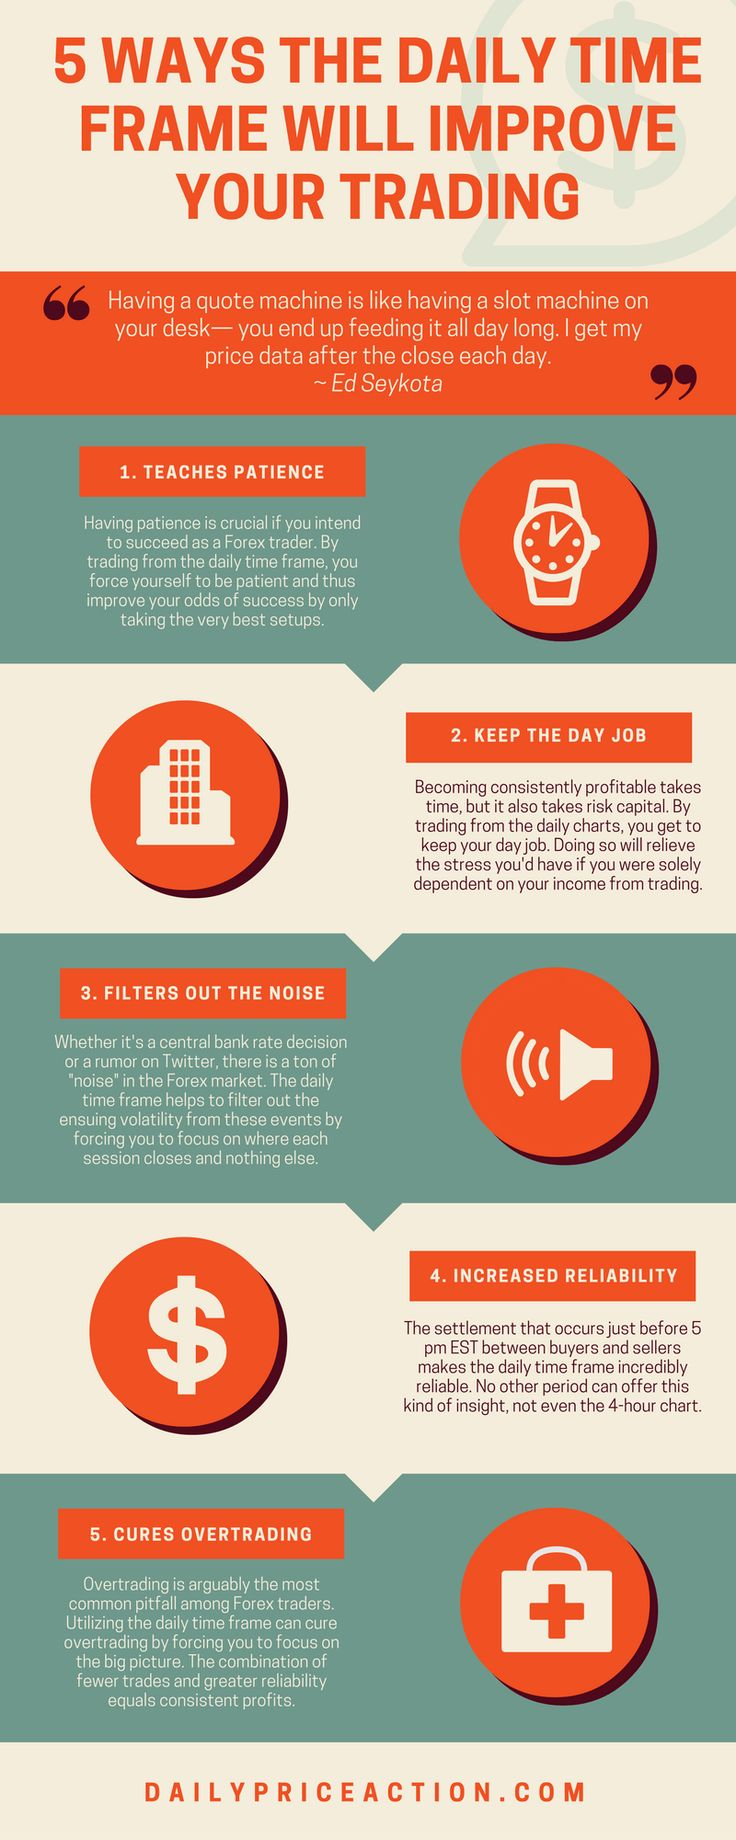 5-ways-the-daily-time-frame-will-improve-your-trading-infographic